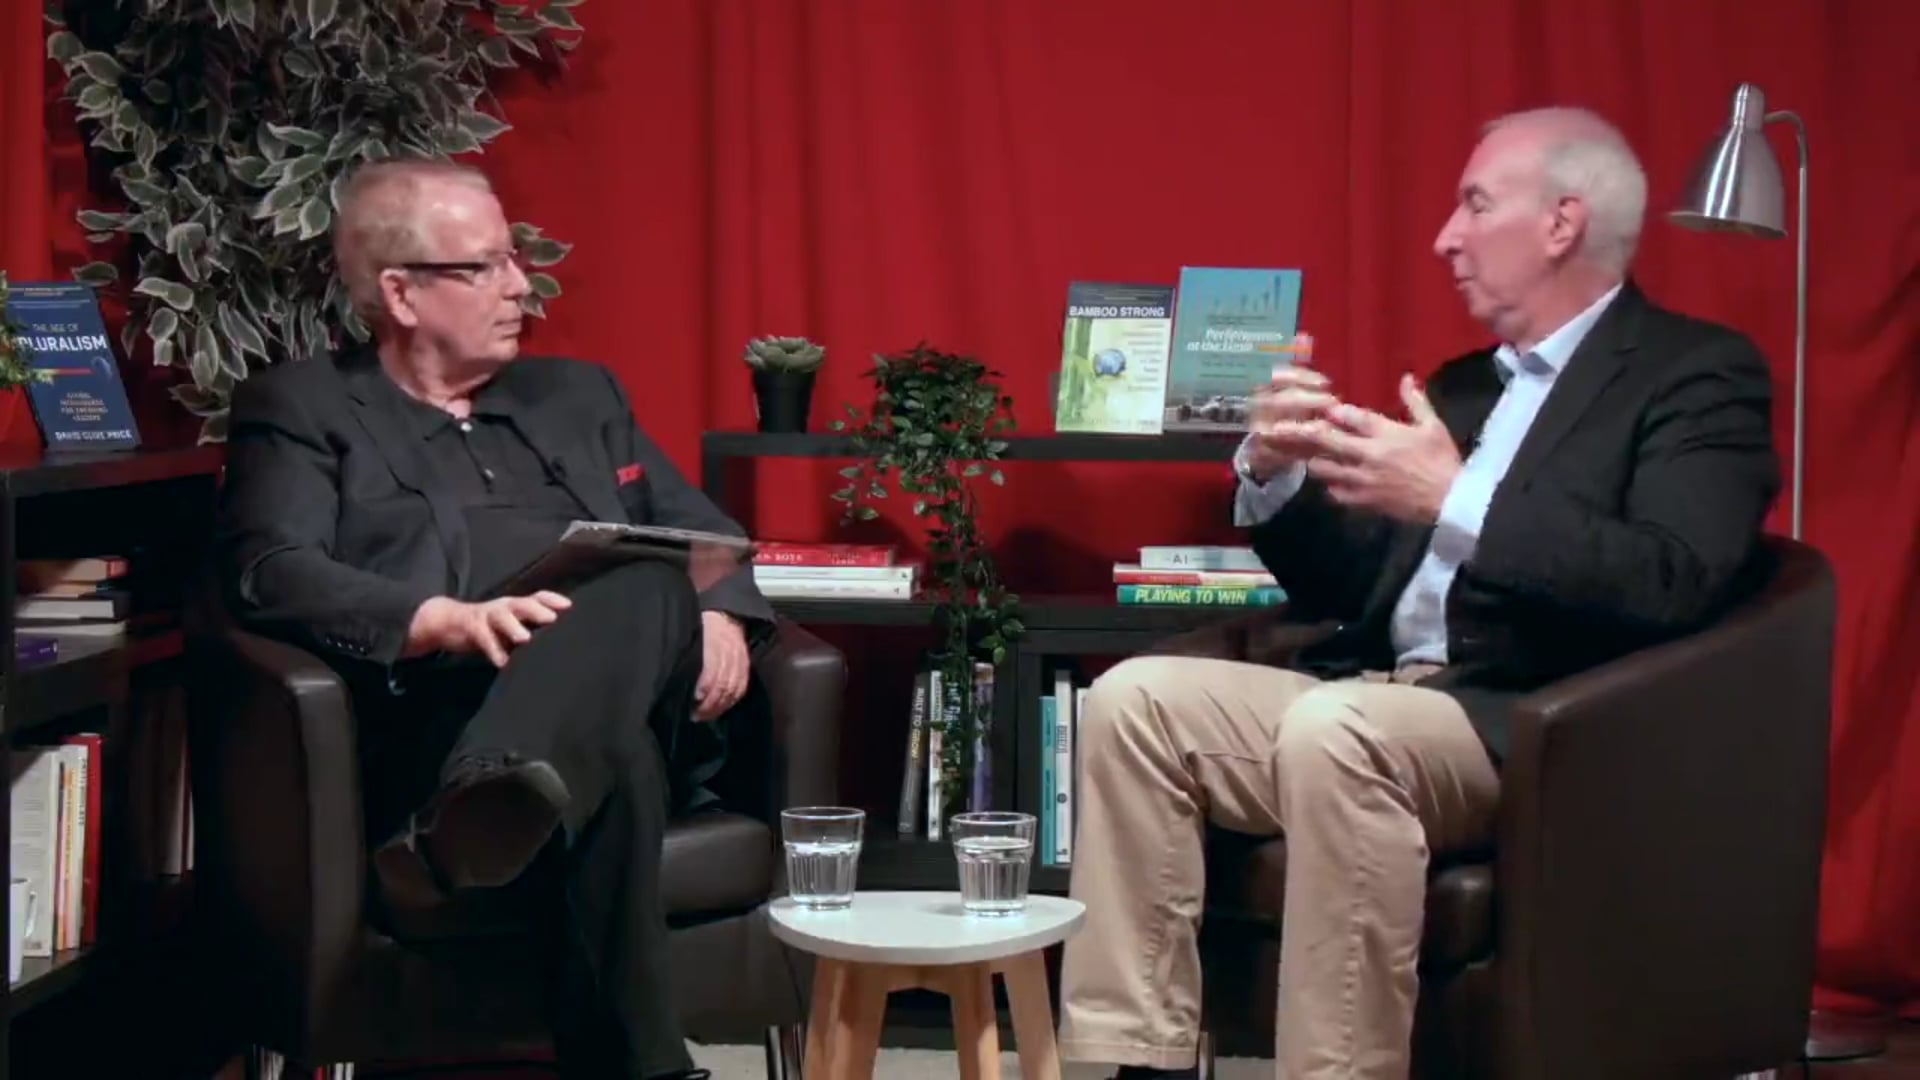 Excerpts from Ken Pasternak interview with David Clive Price in London June 28 2019